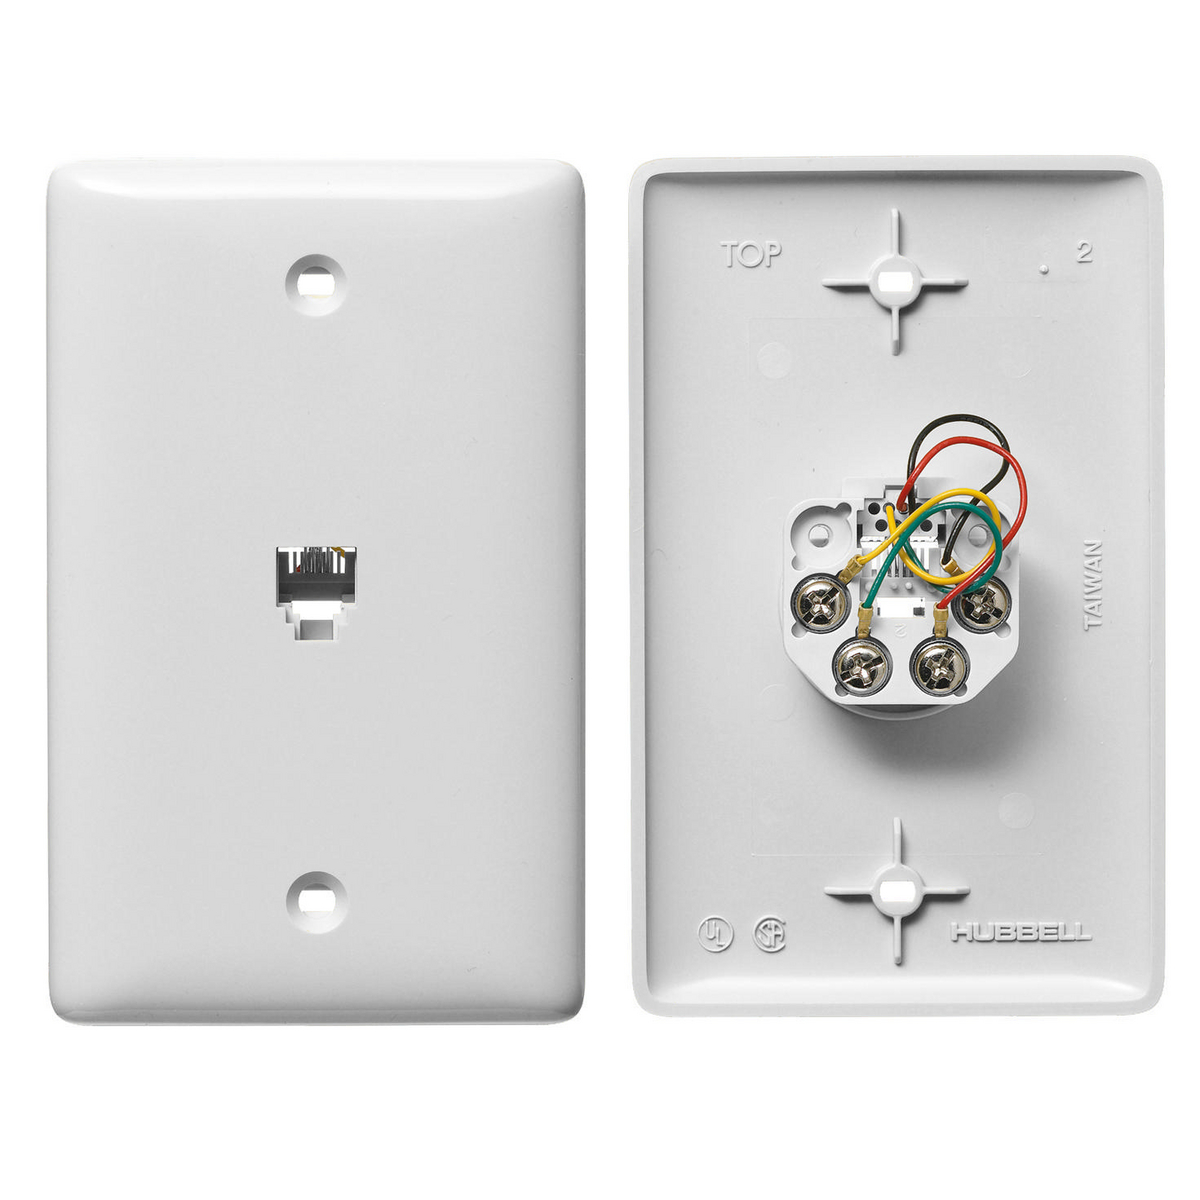 Hubbell NS730W 1-Gang White Thermoplastic Standard 1-RJ11 Molded-In Data Communication Plate